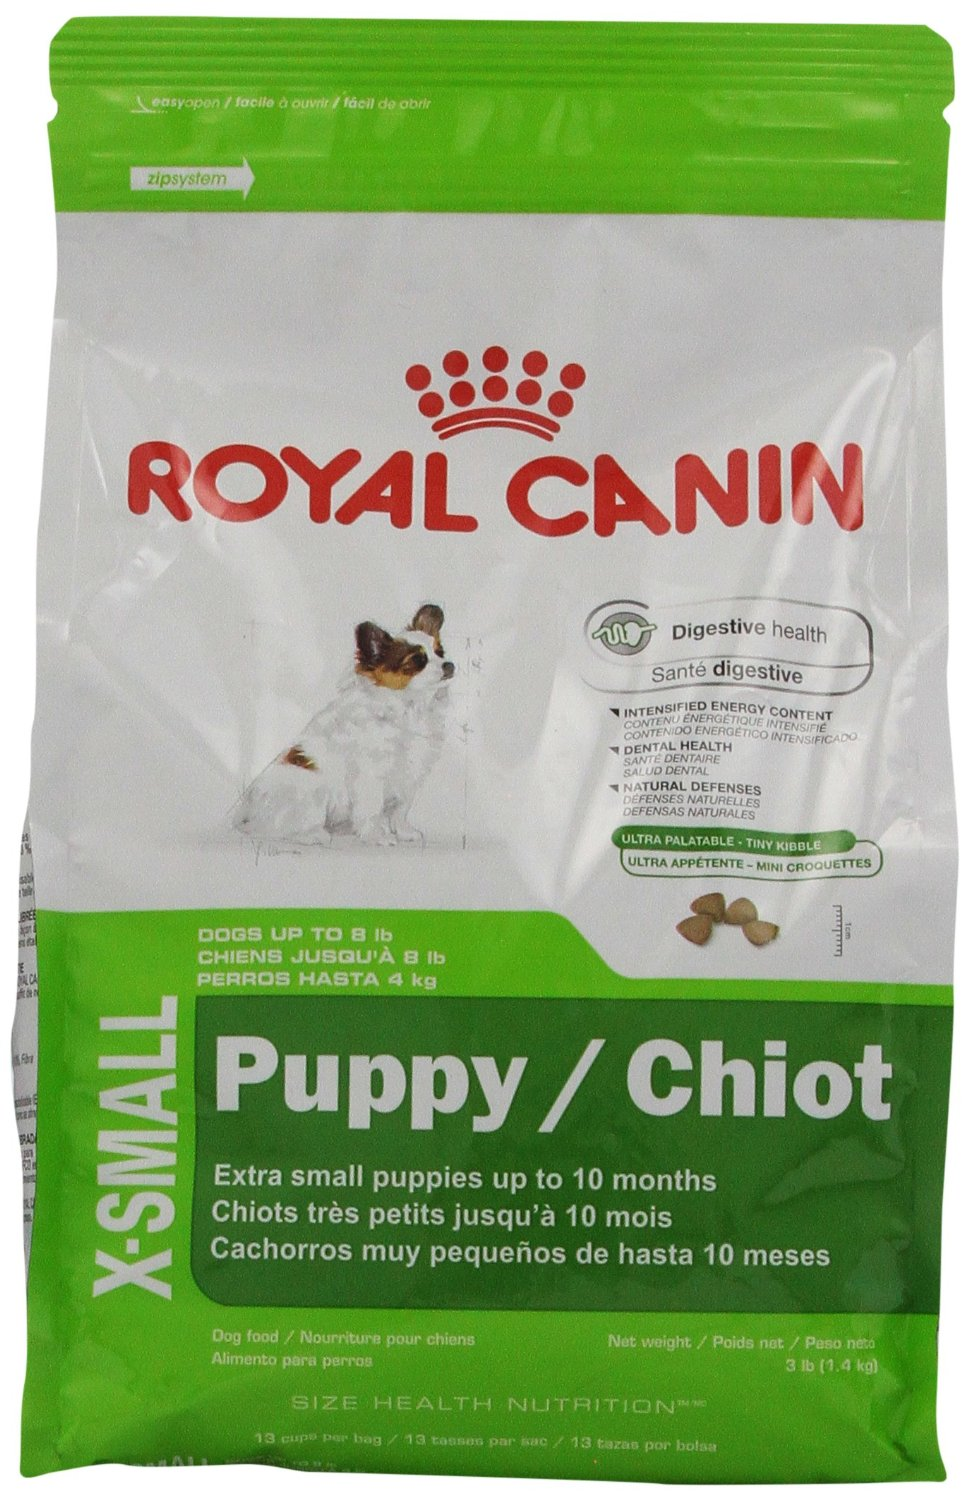 Royal Canin Puppy Dog Food